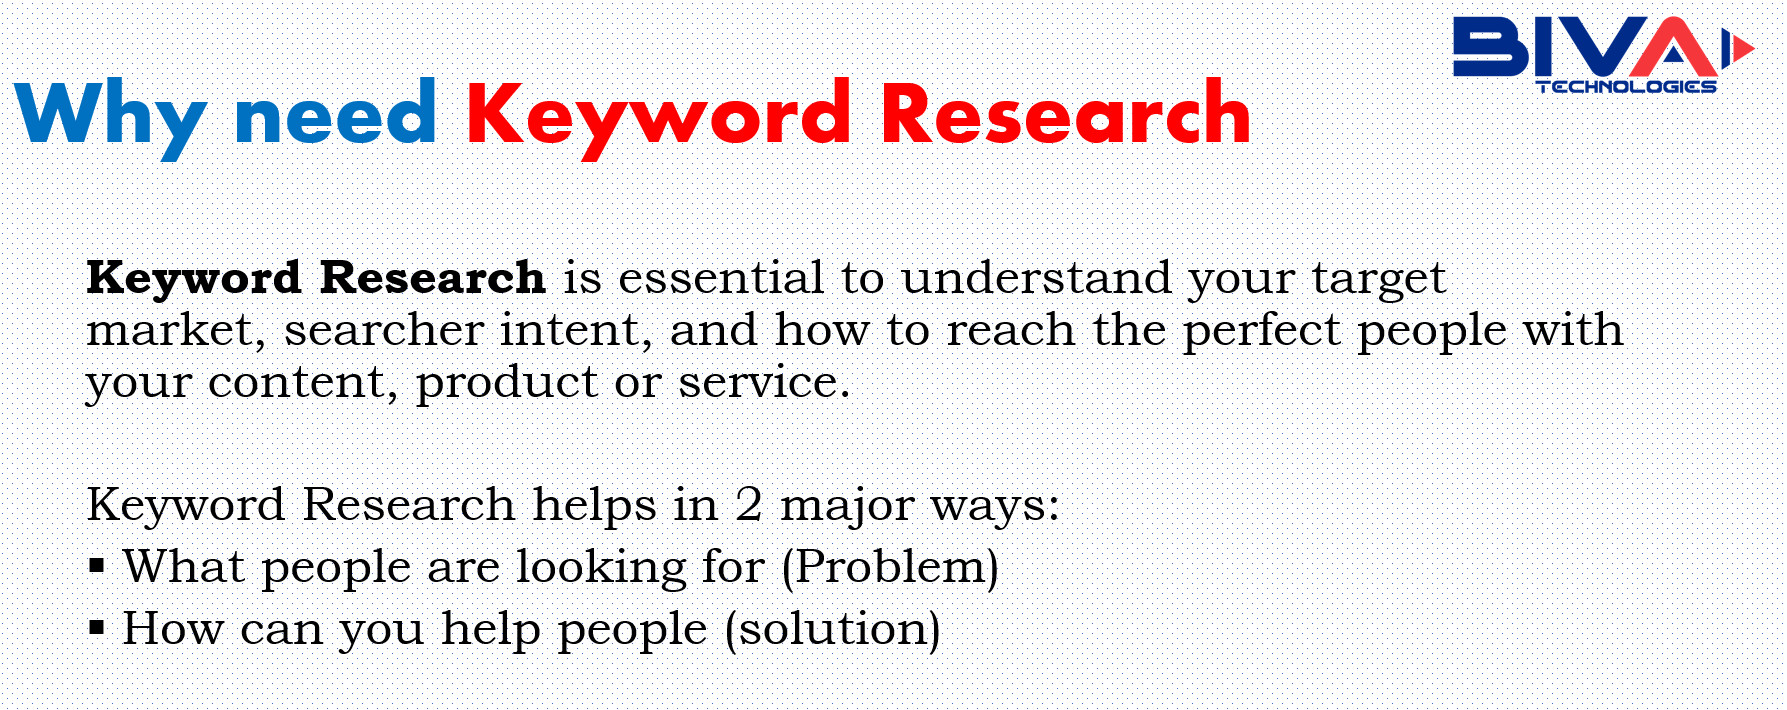 why need keyword research